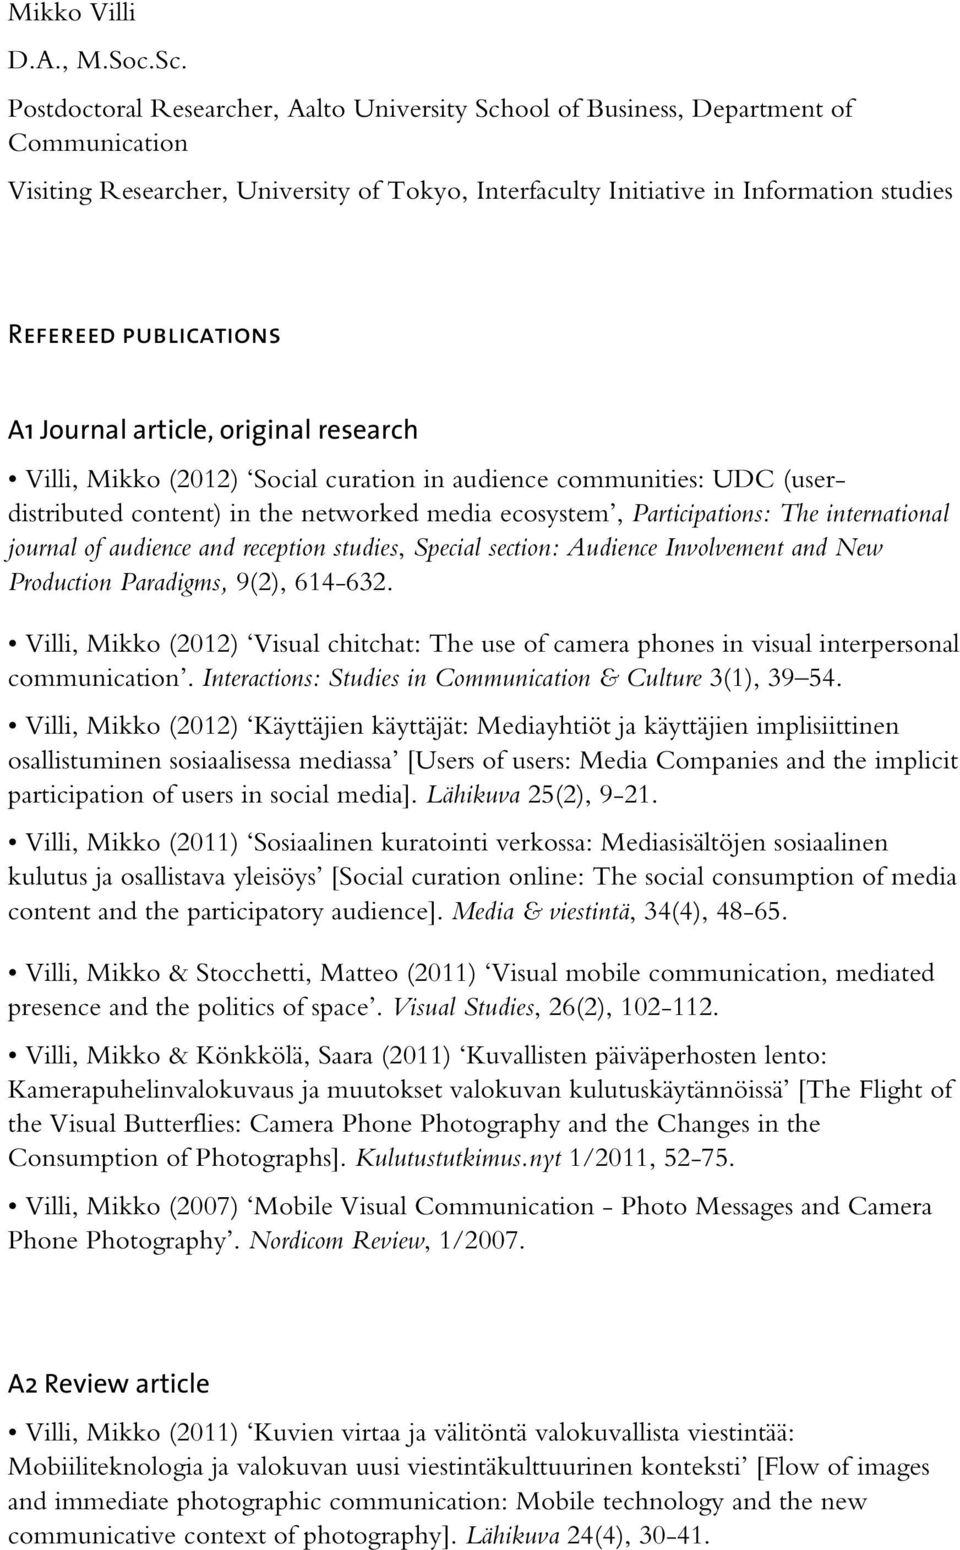 publications A1 Journal article, original research Villi, Mikko (2012) Social curation in audience communities: UDC (userdistributed content) in the networked media ecosystem, Participations: The